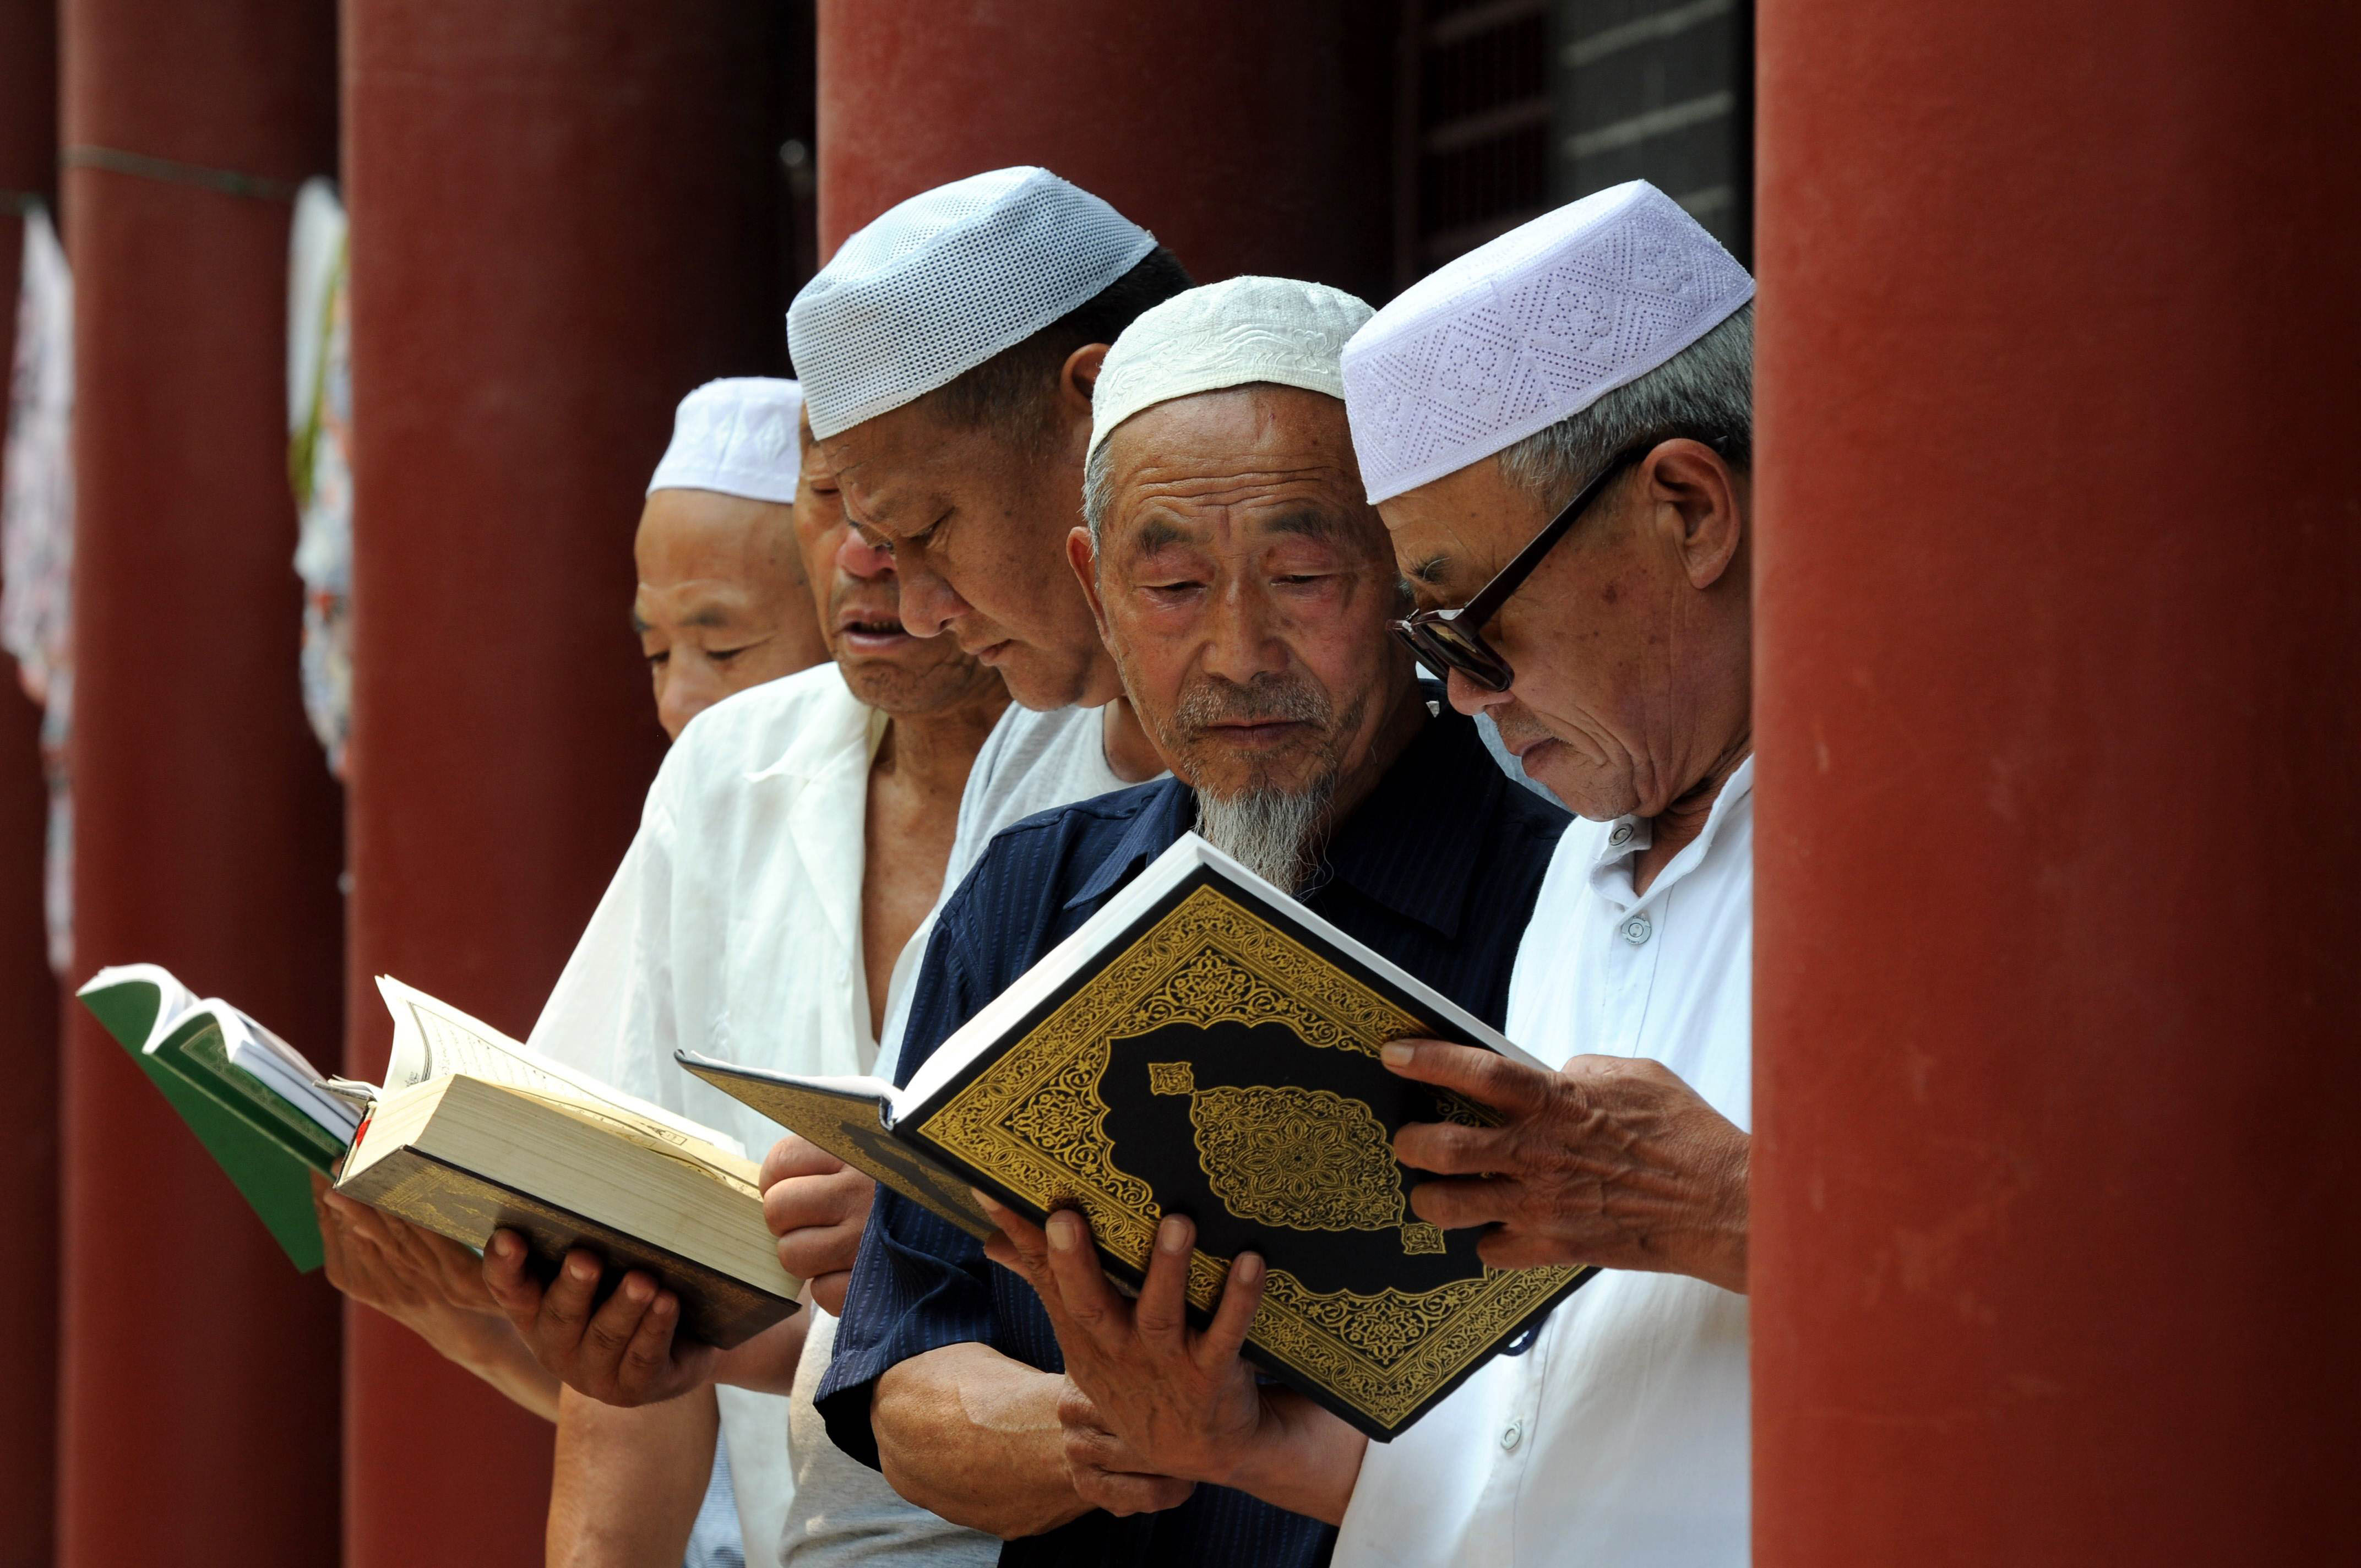 This picture taken on June 30, 2014 shows Chinese Muslims reading the Koran at a mosque in Tancheng, in eastern China's Shandong province, at the beginning of the holy month of Ramadan.  Across the Muslim world, the faithful fast from dawn to dusk, and abstain from eating, drinking, smoking and having sex during that time as they strive to be more pious and charitable.      CHINA OUT     AFP PHOTO